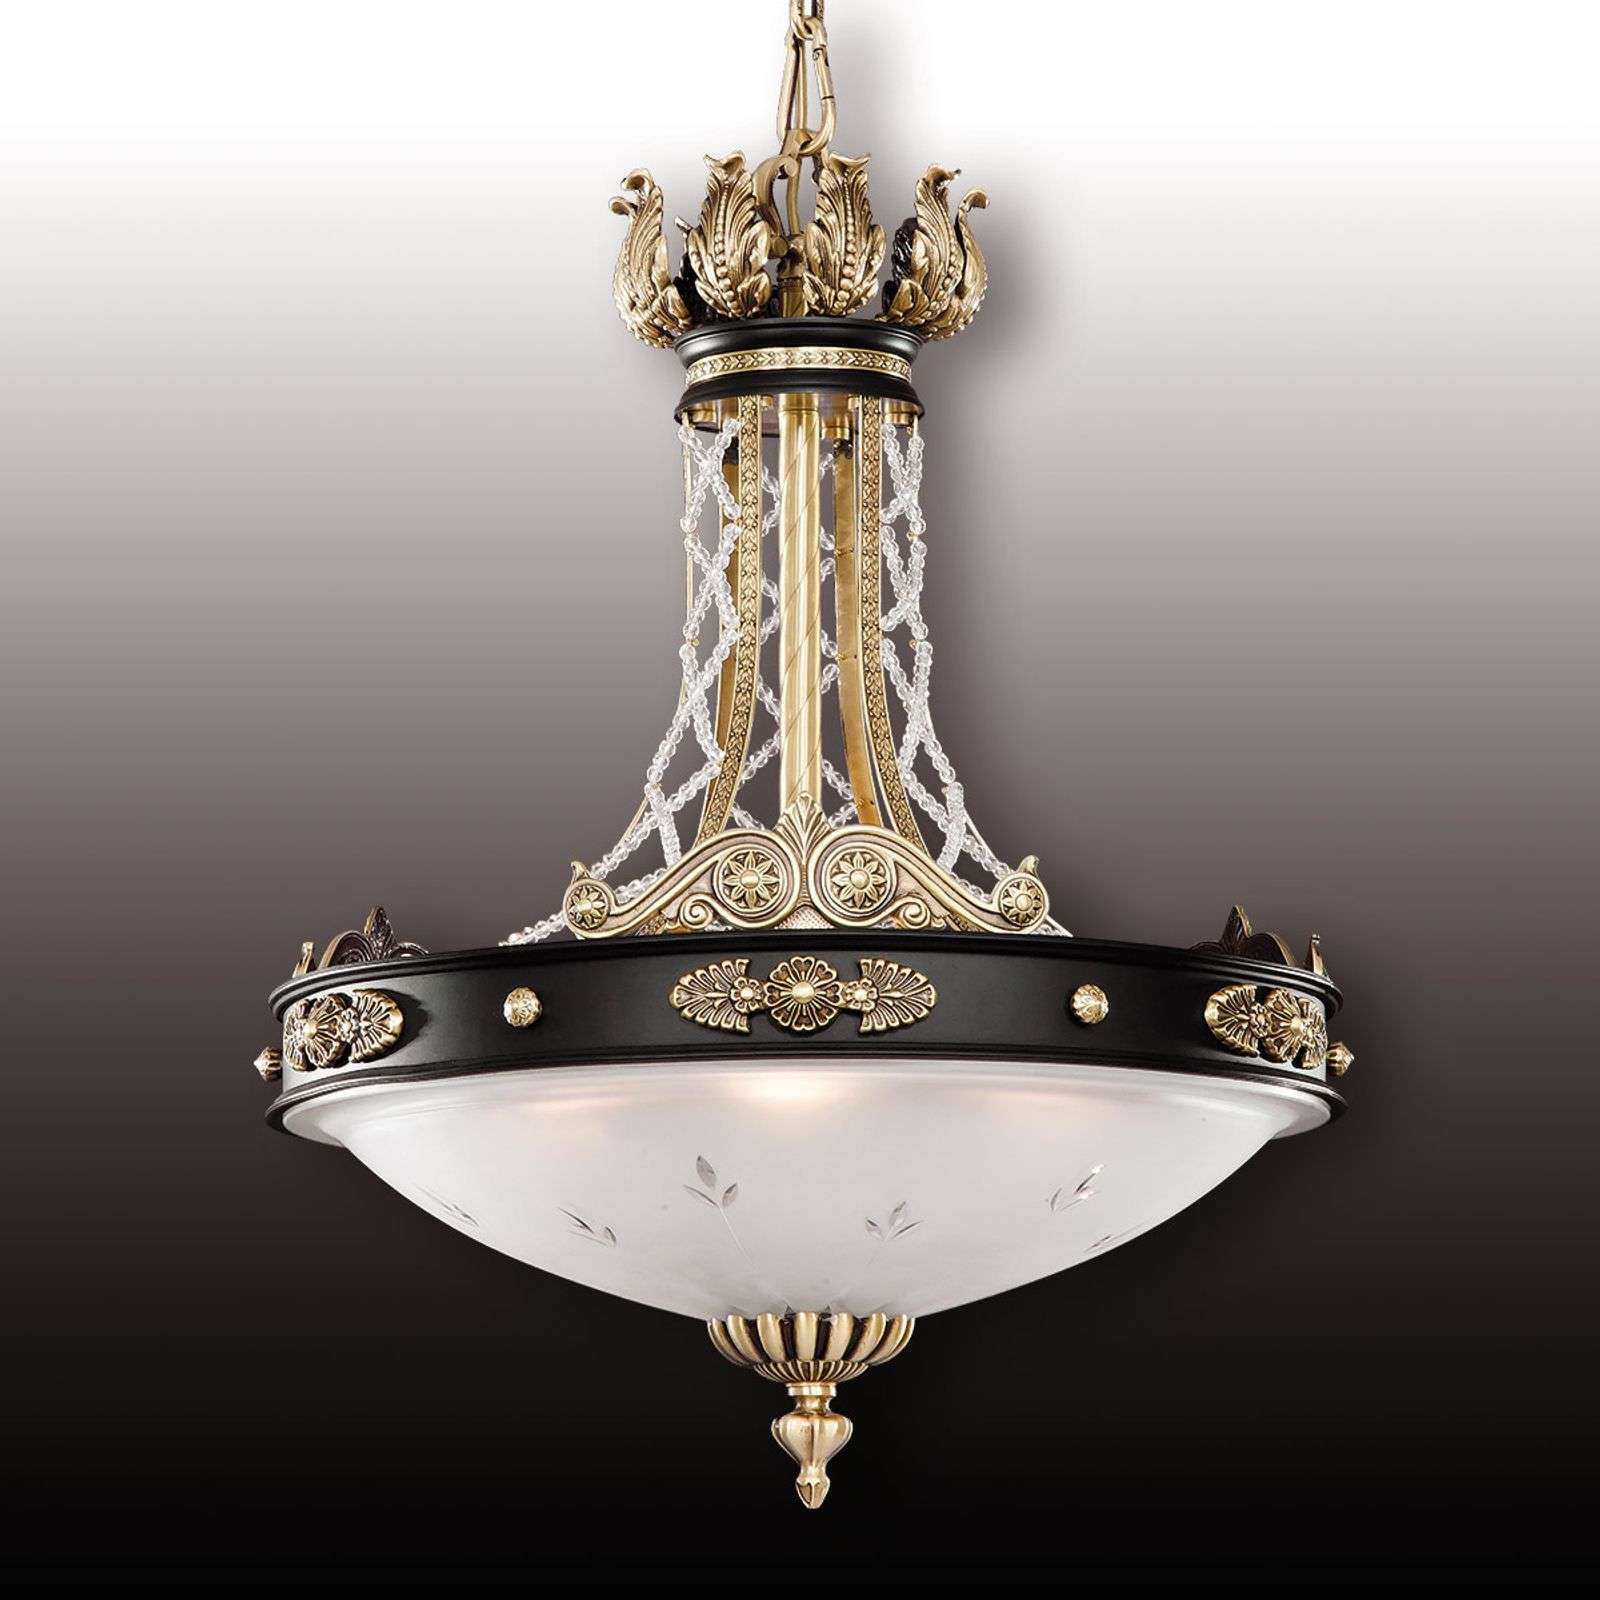 Suspension Tudor avec cristal Asfour